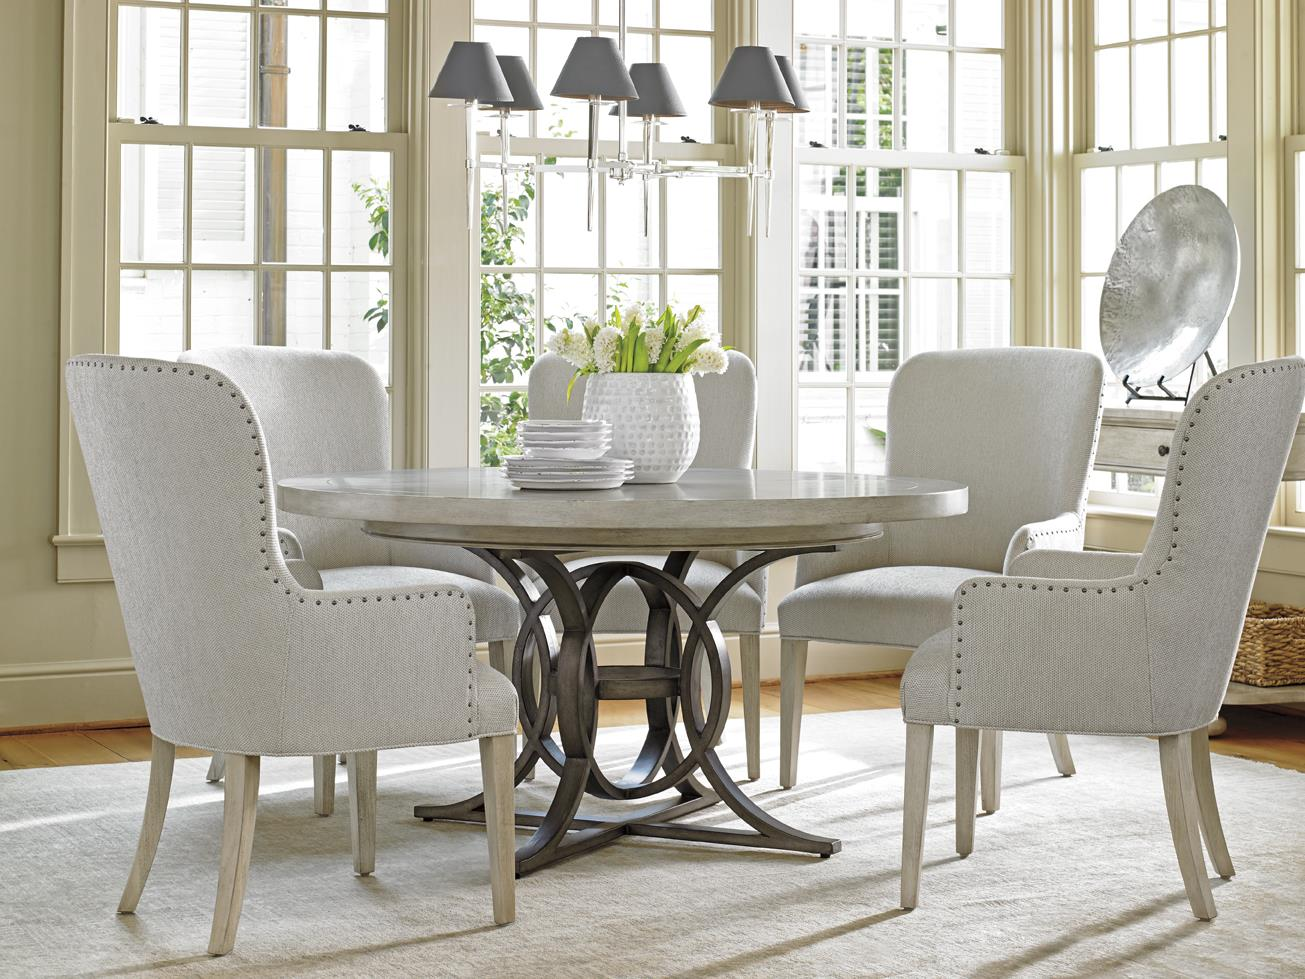 Lexington Oyster Bay 6 Pc Dining Set - Item Number: 714-875C+5X714-883-01